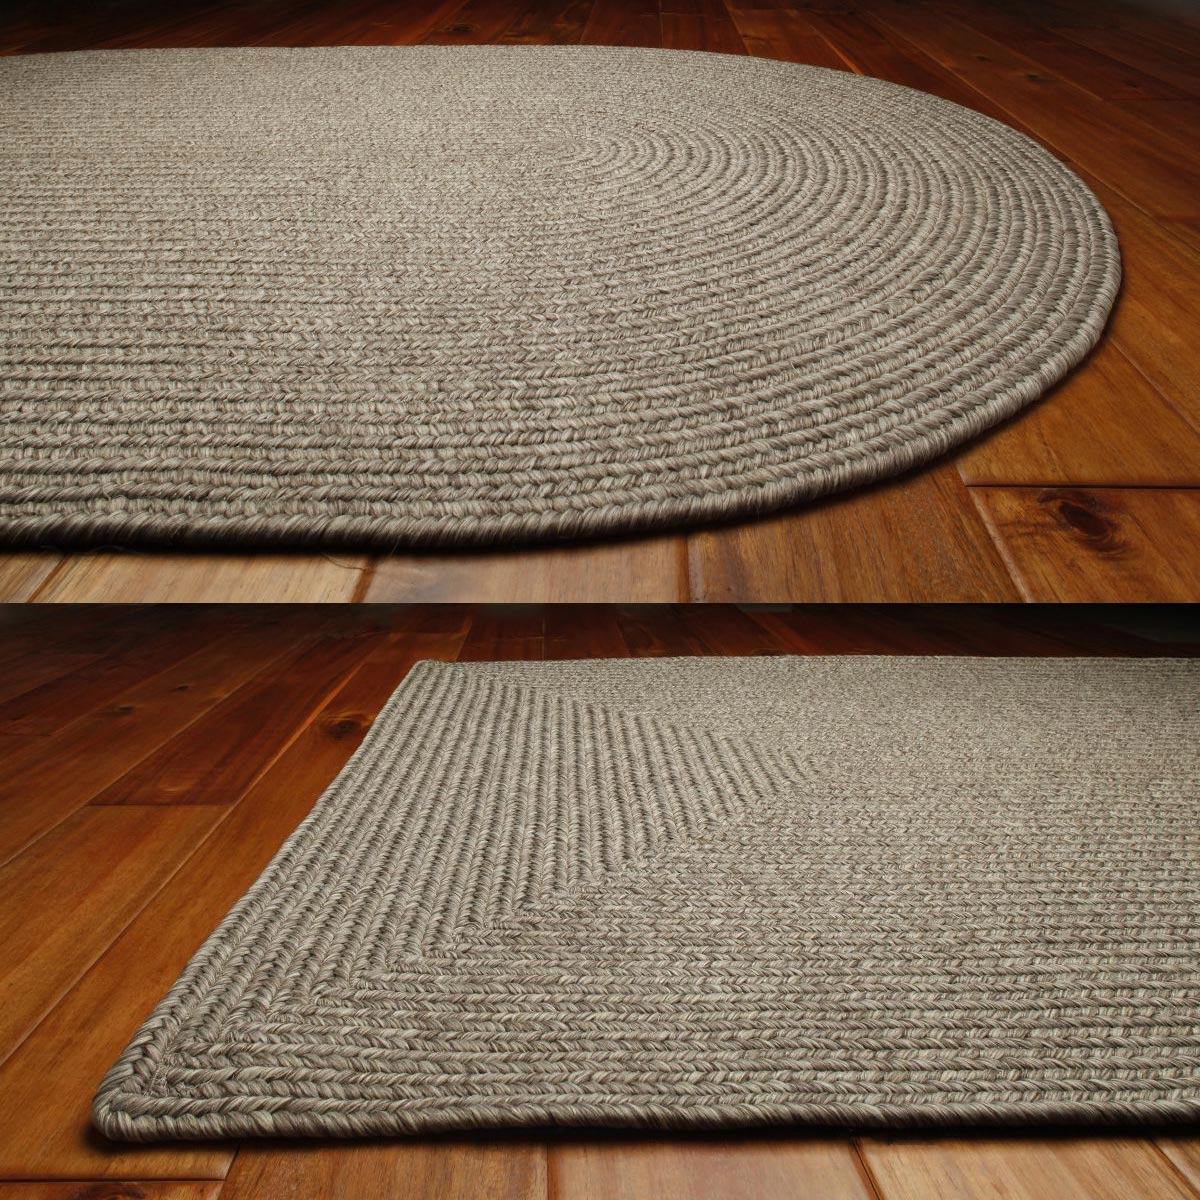 Solid Braided Area Rugs Indoor Outdoor Oval Rectangle - photo#43